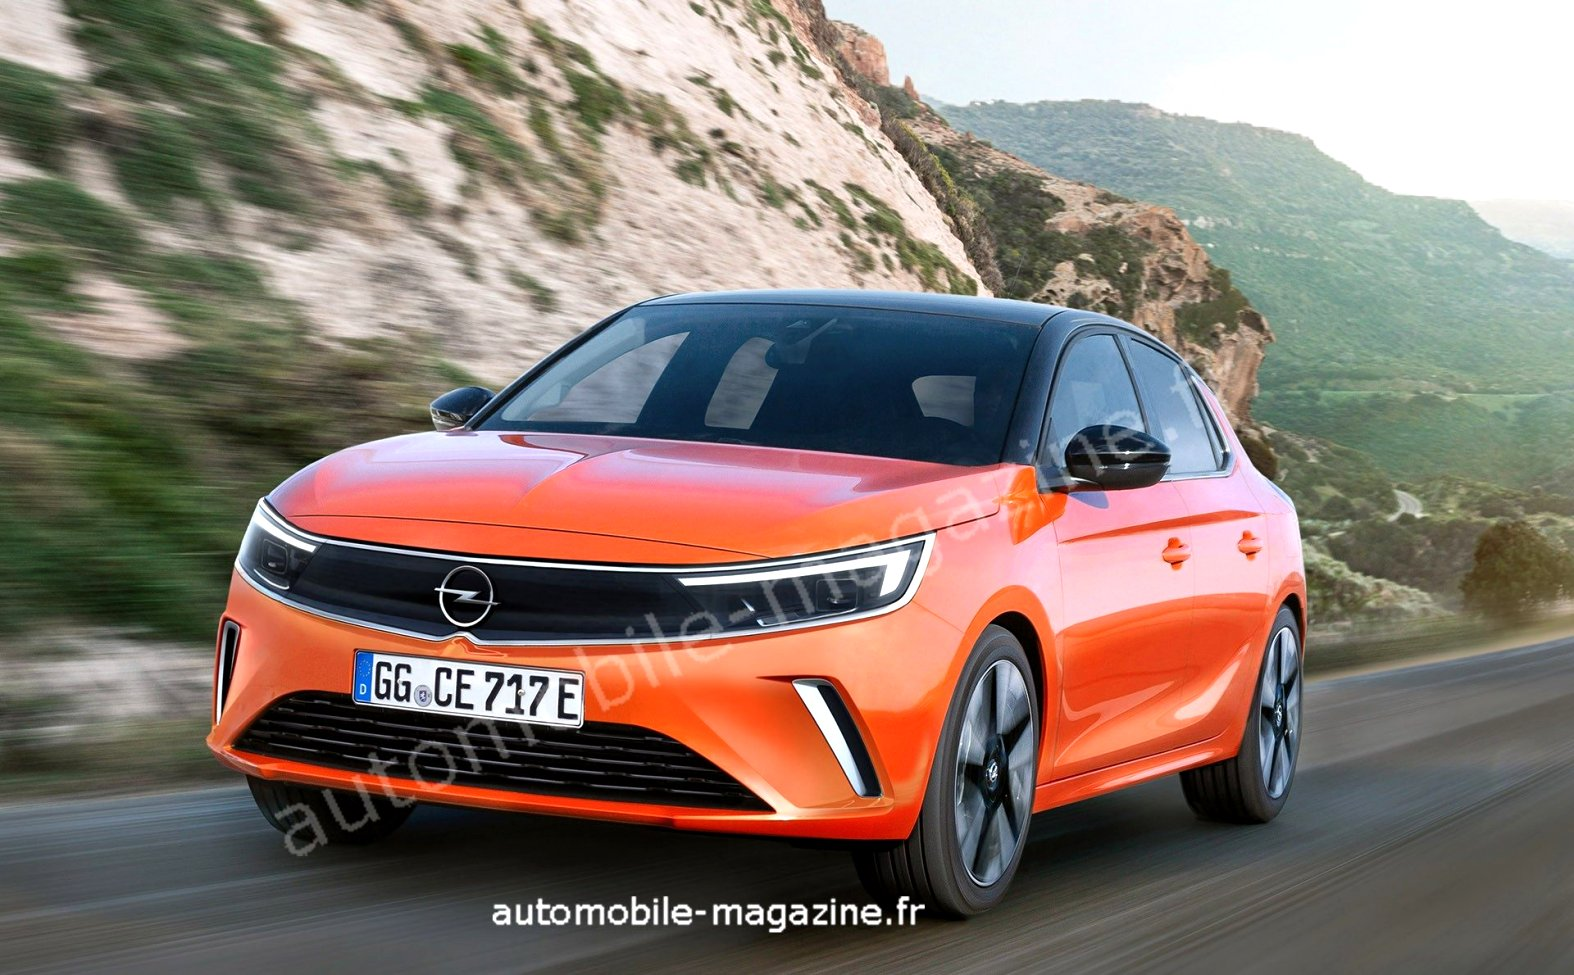 opel big event 2020 Concept and Review